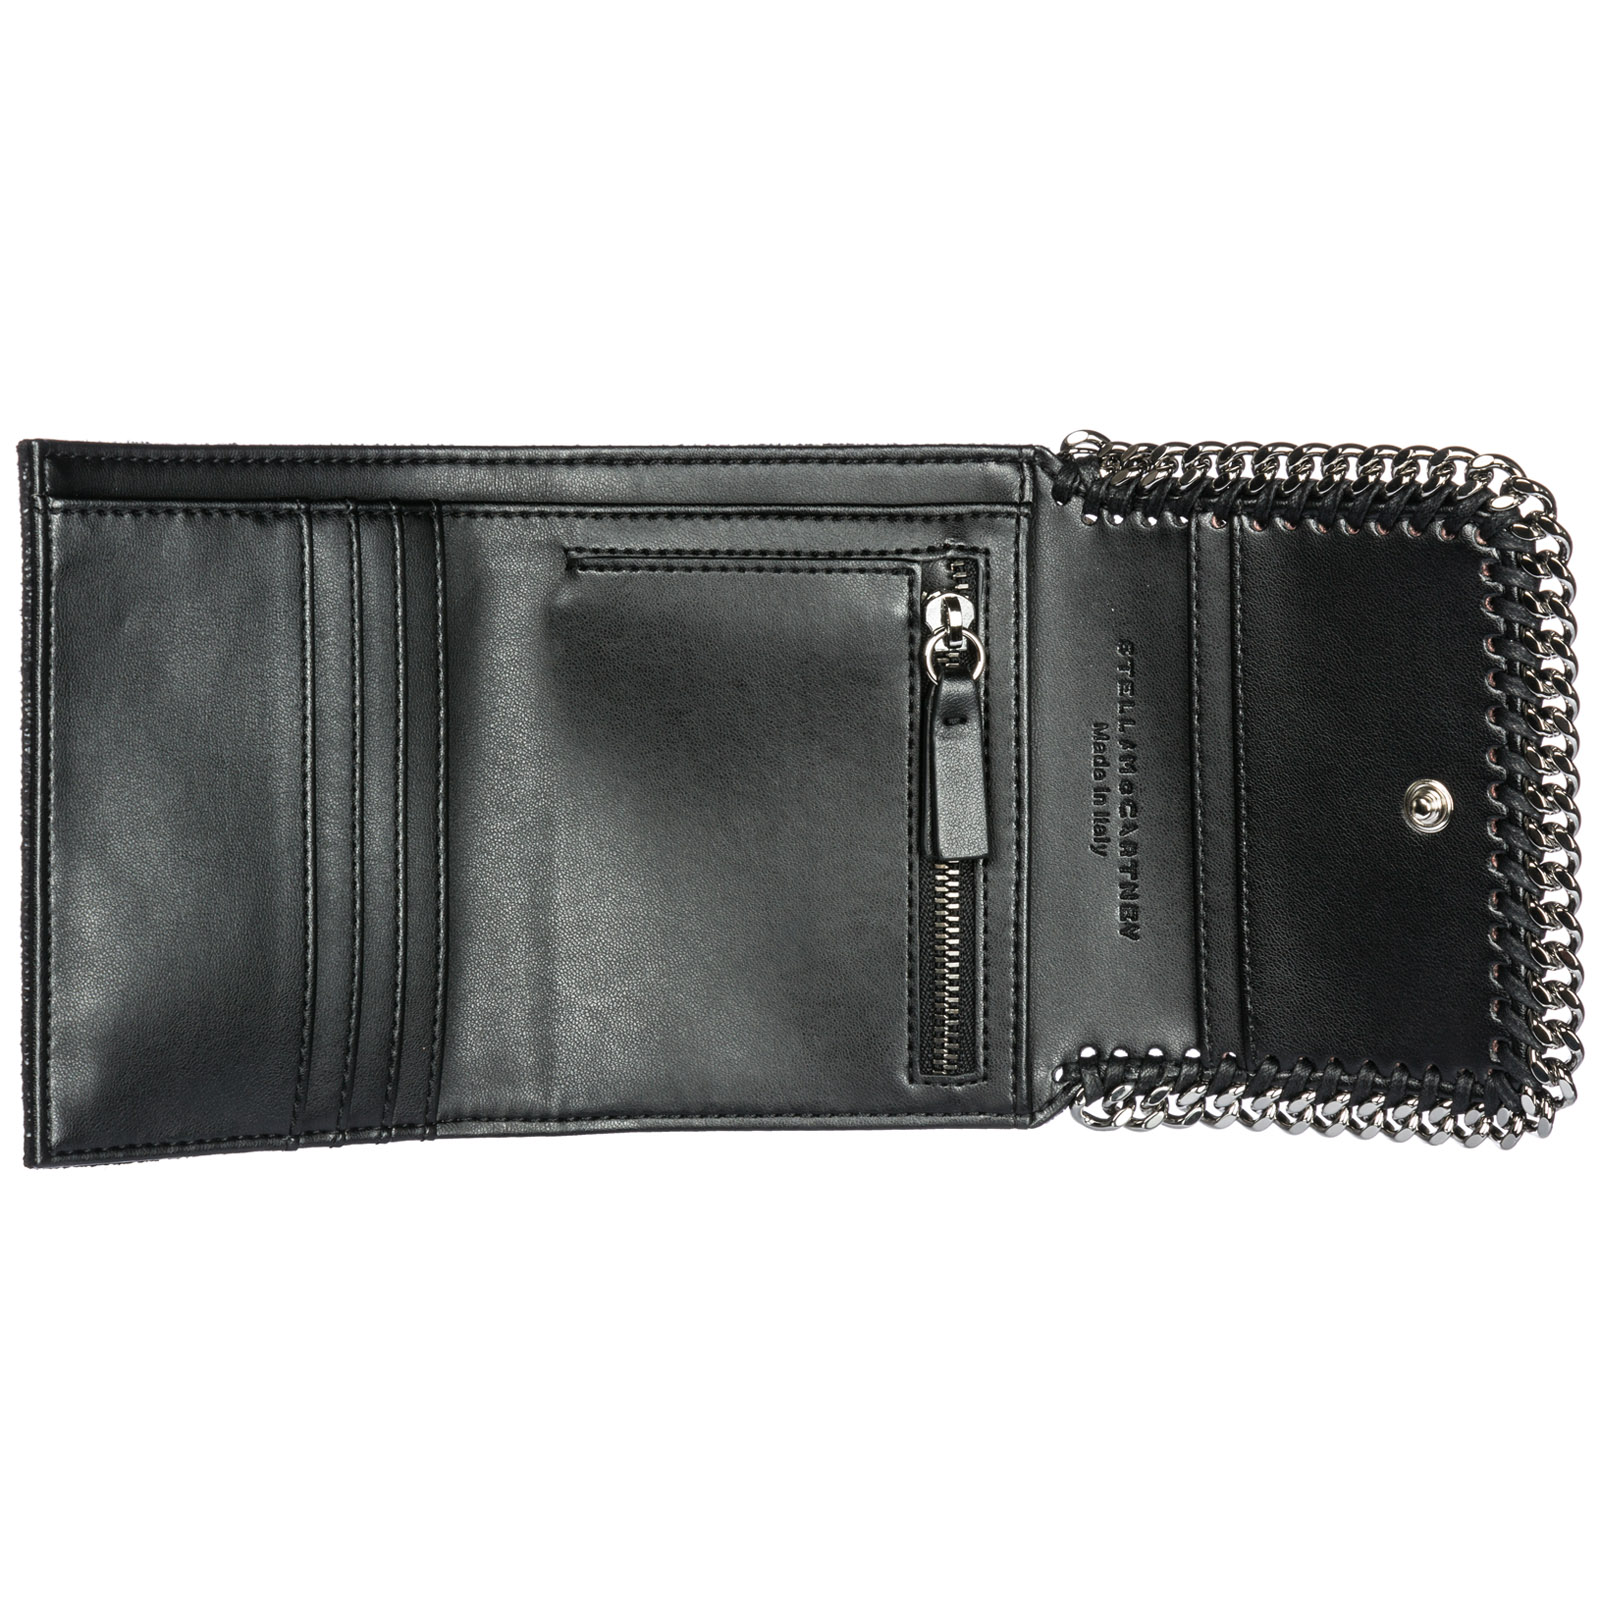 Women s wallet credit card trifold falabella Women s wallet credit card  trifold falabella ... ede661a3660